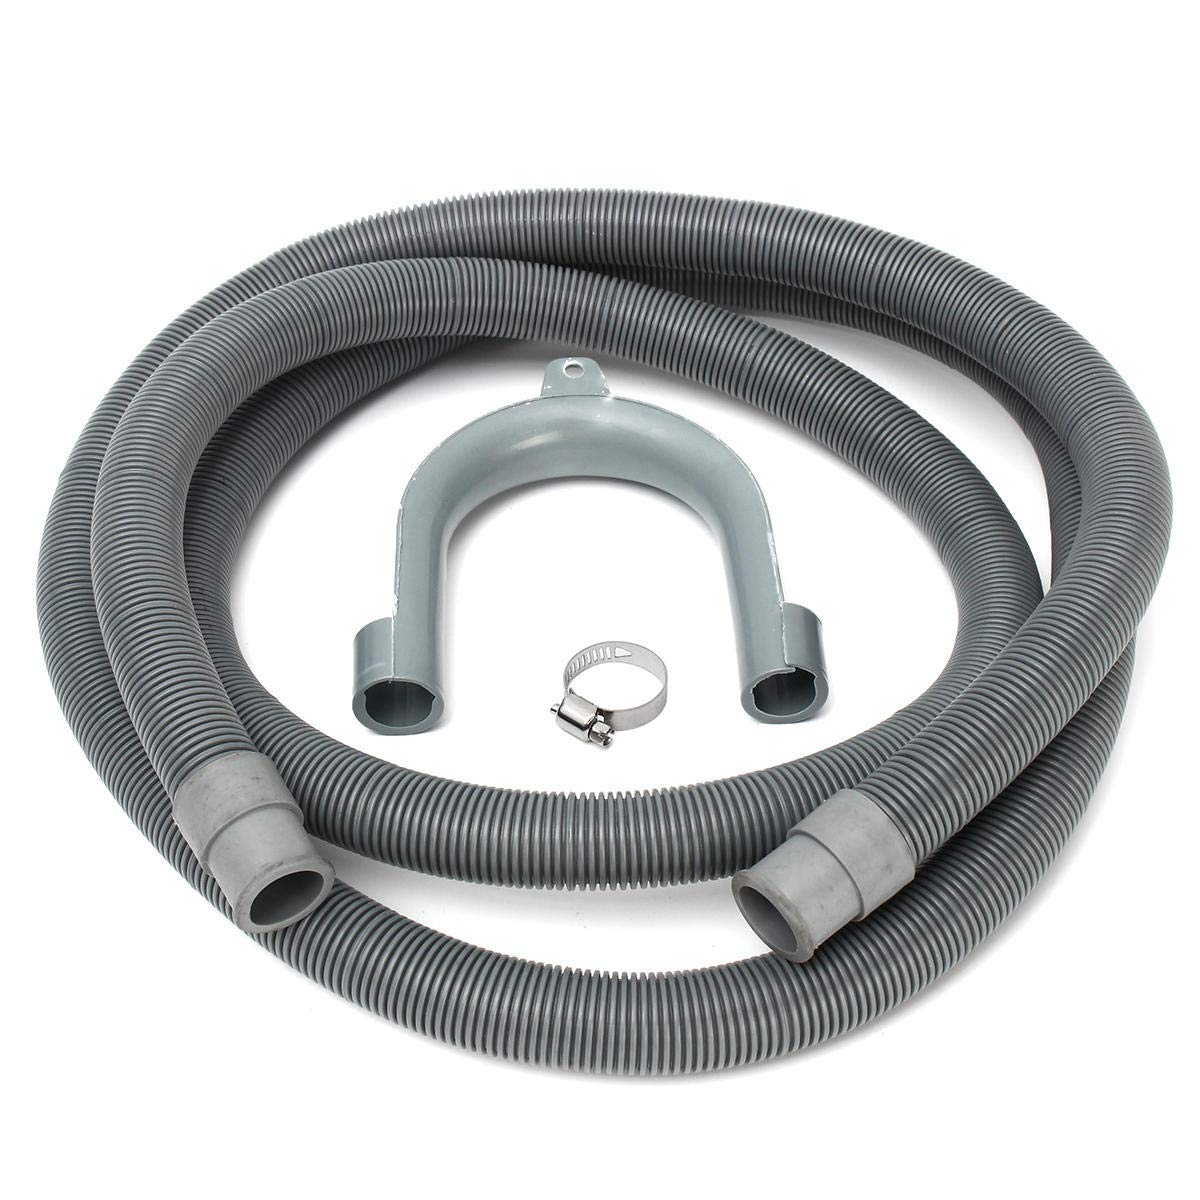 GIlH Extension Drain Hose Water Pipe For Hotpoint Washing Machine 2.5M